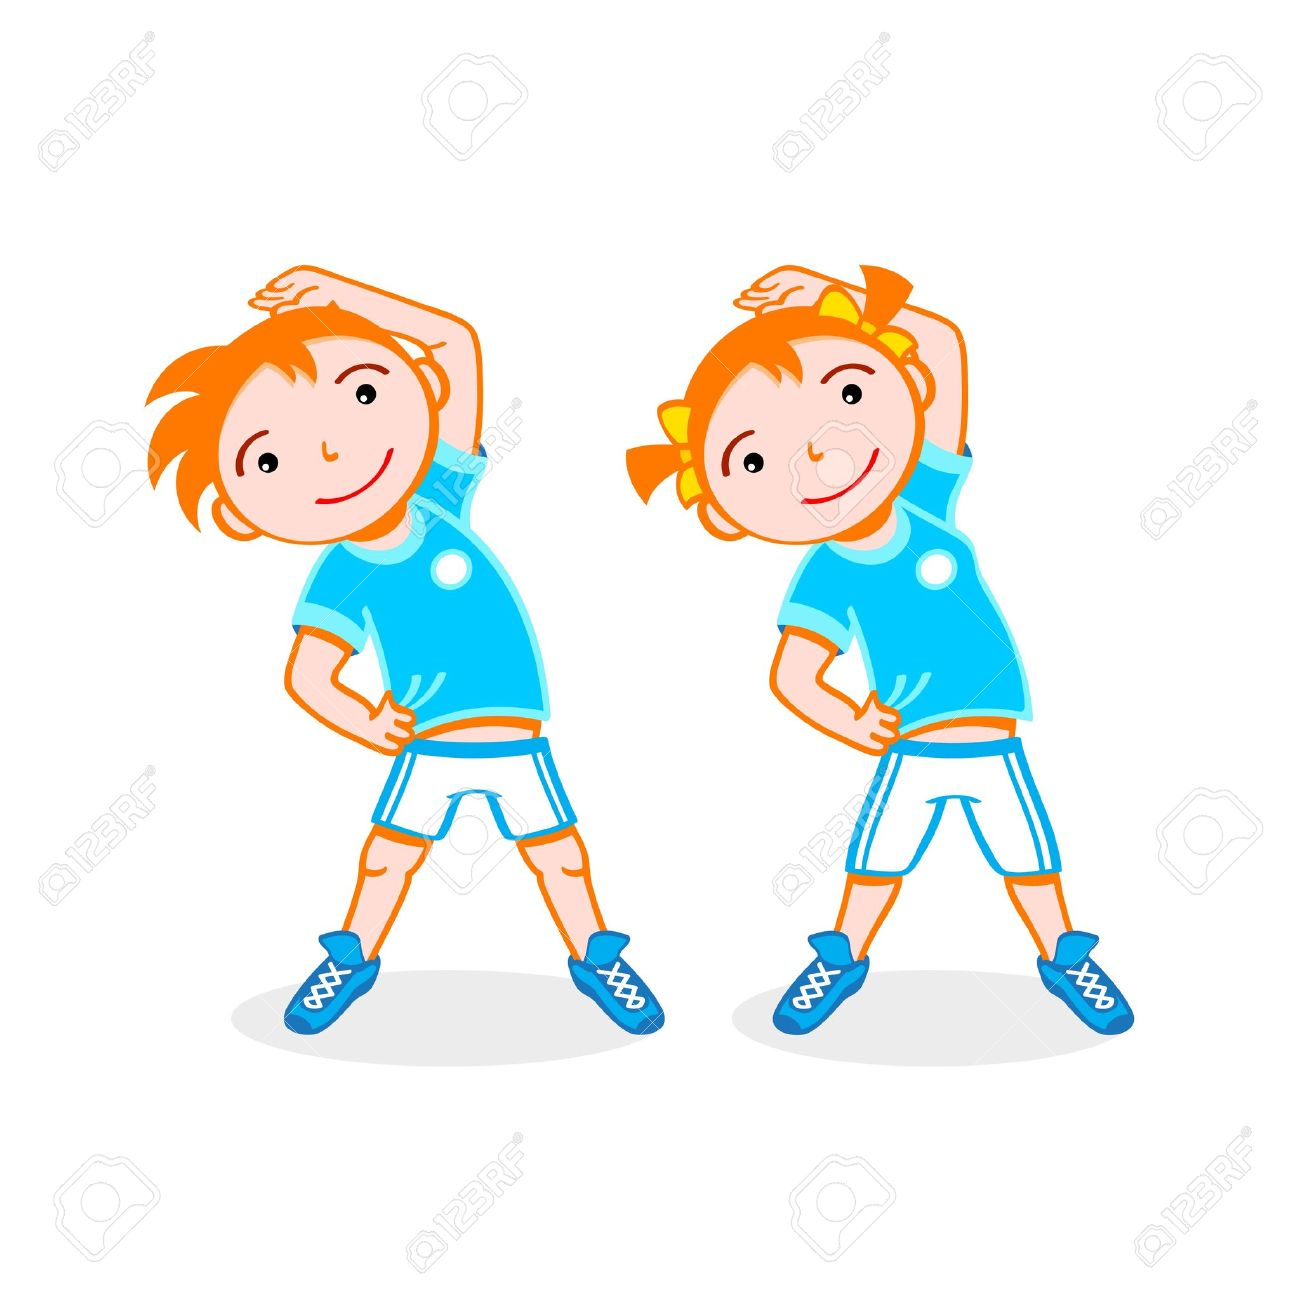 Cheerful Boy And Girl Do Stretching Exercise Royalty Free Cliparts Vectors And Stock Illustration Image 11197426